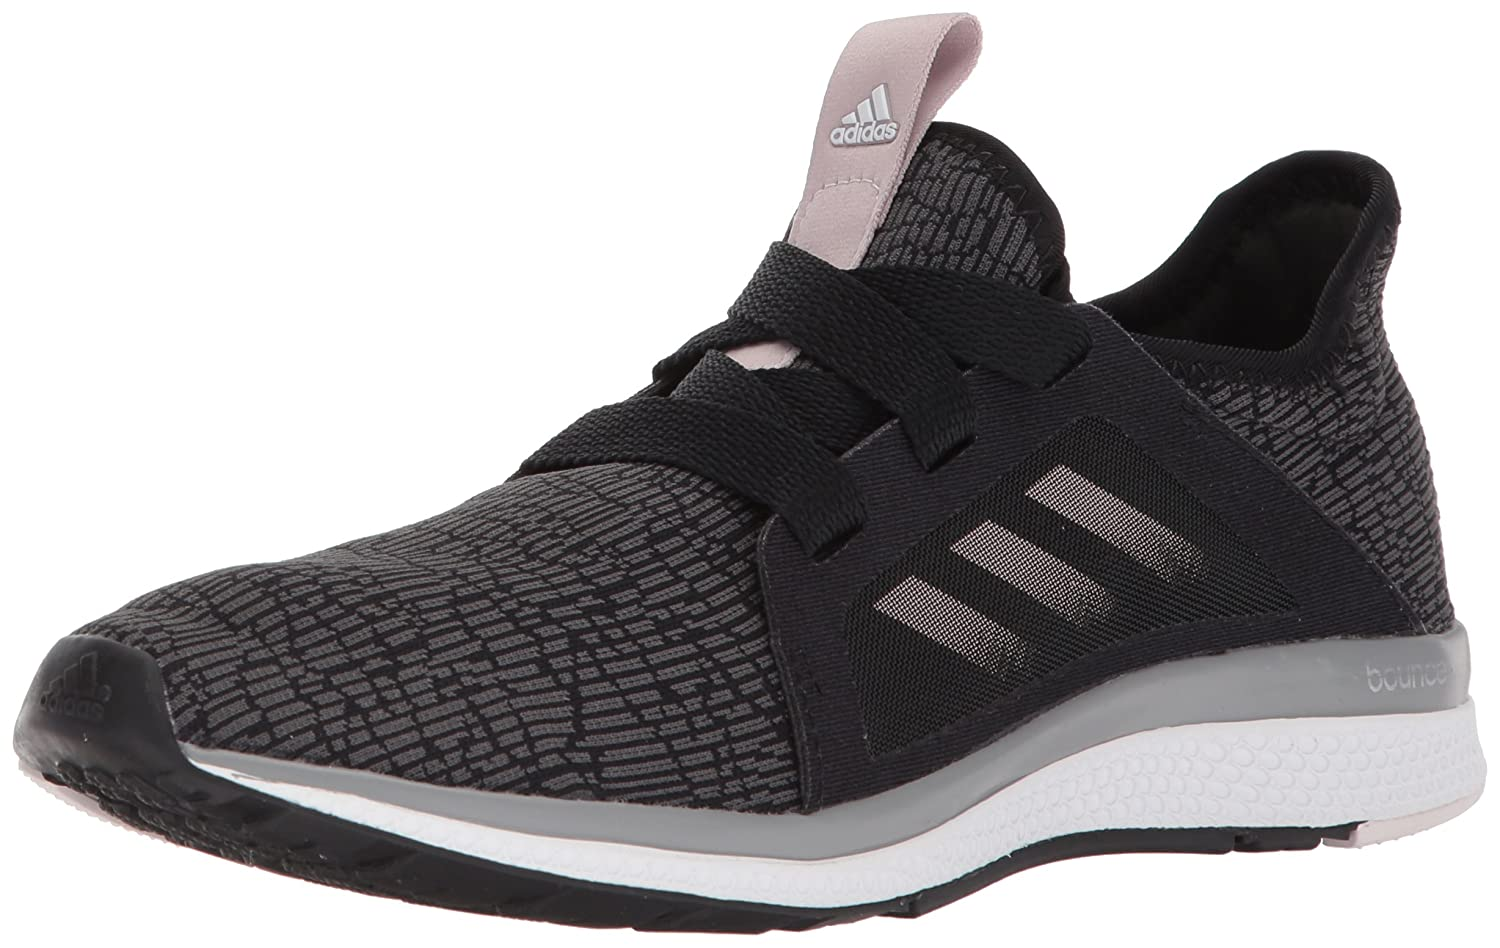 adidas Women's Edge Lux W Running Shoe B0721TZ6FF 8 B(M) US|Black/Vapour Grey Metallic/Orchid Tint